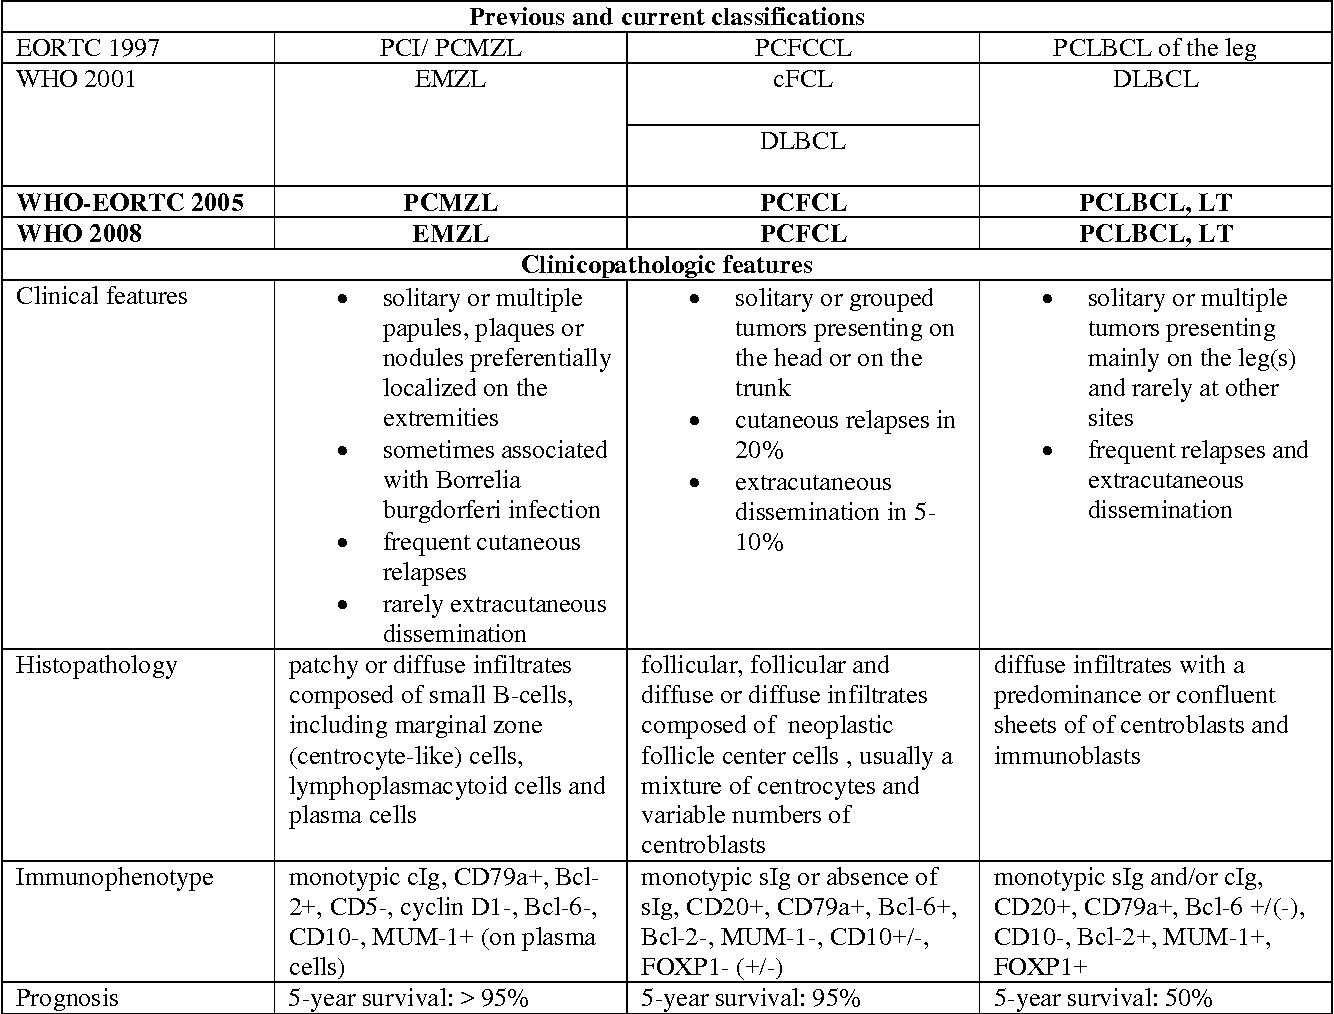 Table 1. Overview of previously and currently used classification systems for cutaneous lymphomas and clinicopathologic features of the different CBCL entities.